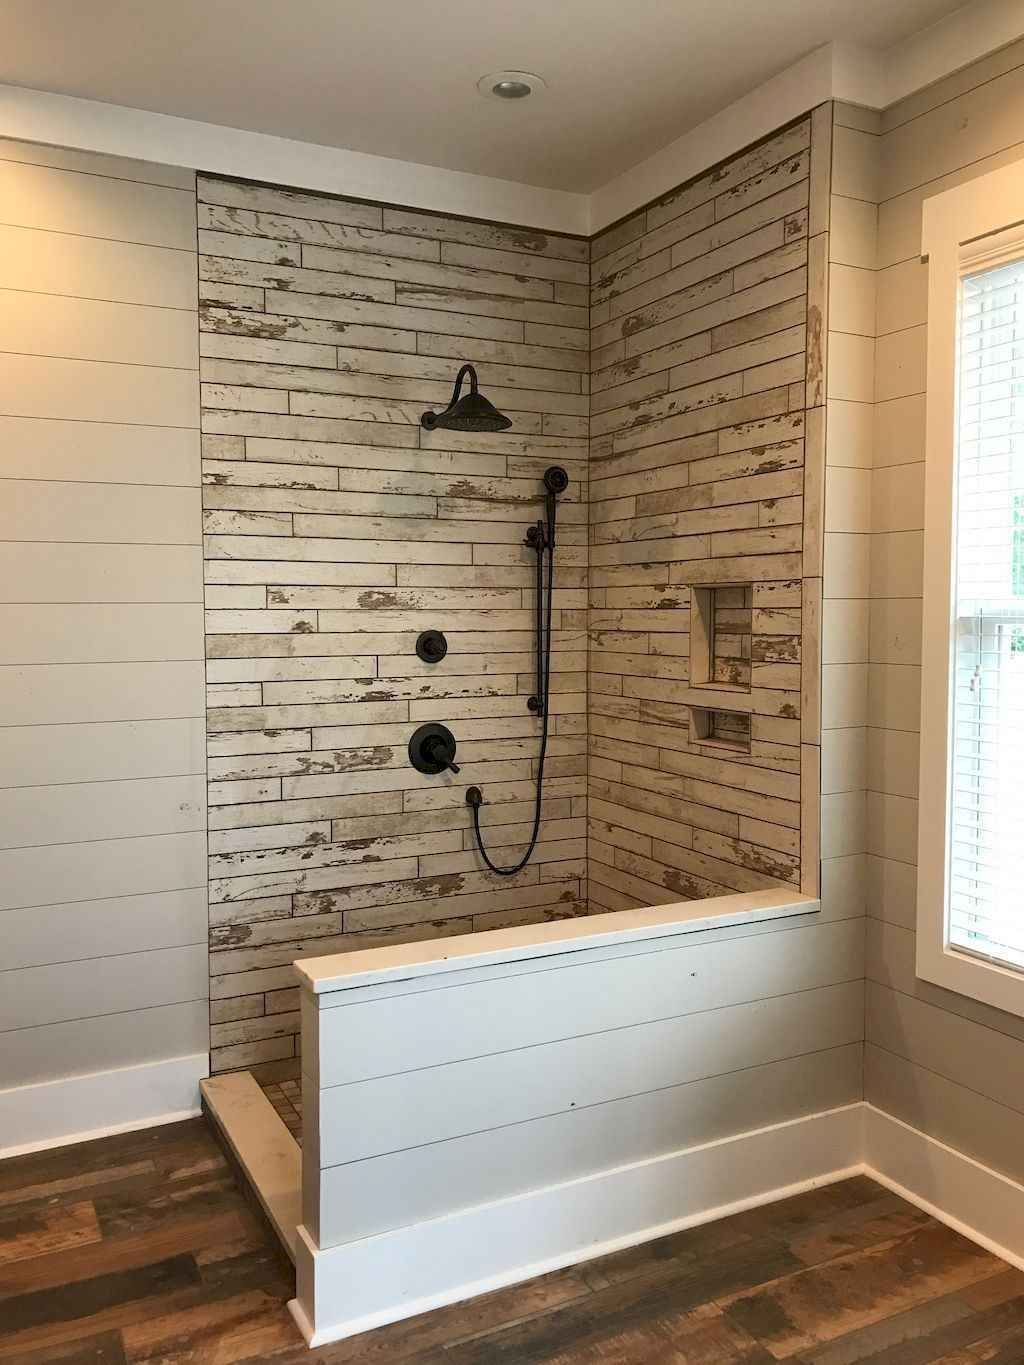 Beautiful Farmhouse Tile Shower Ideas Remodel 24 In 2020 Shower Remodel Farmhouse Shower Shower Tile